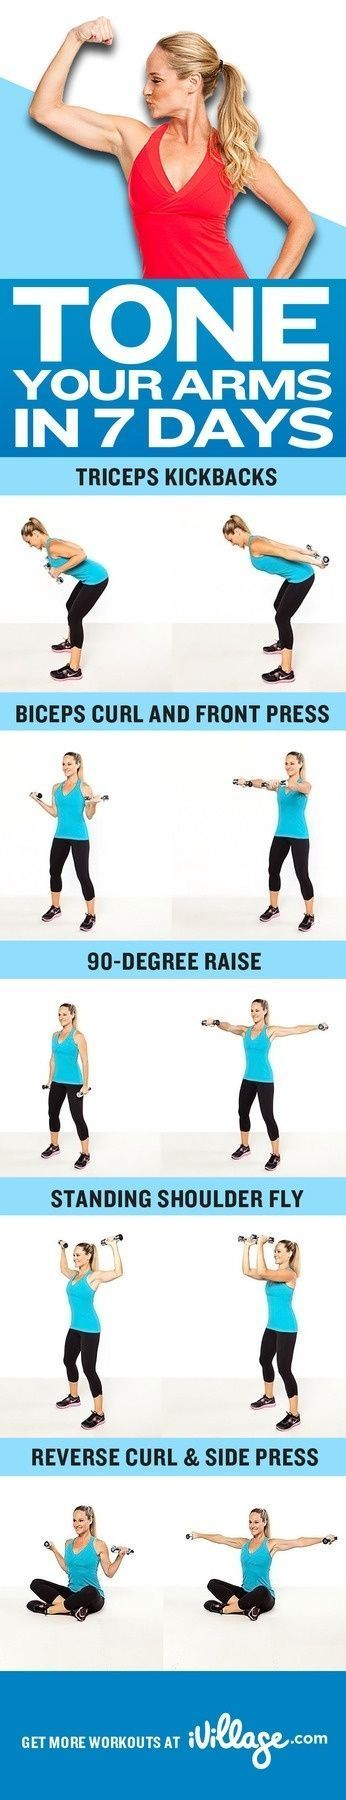 17 Best ideas about Upper Arm Exercises on Pinterest | Arm ...